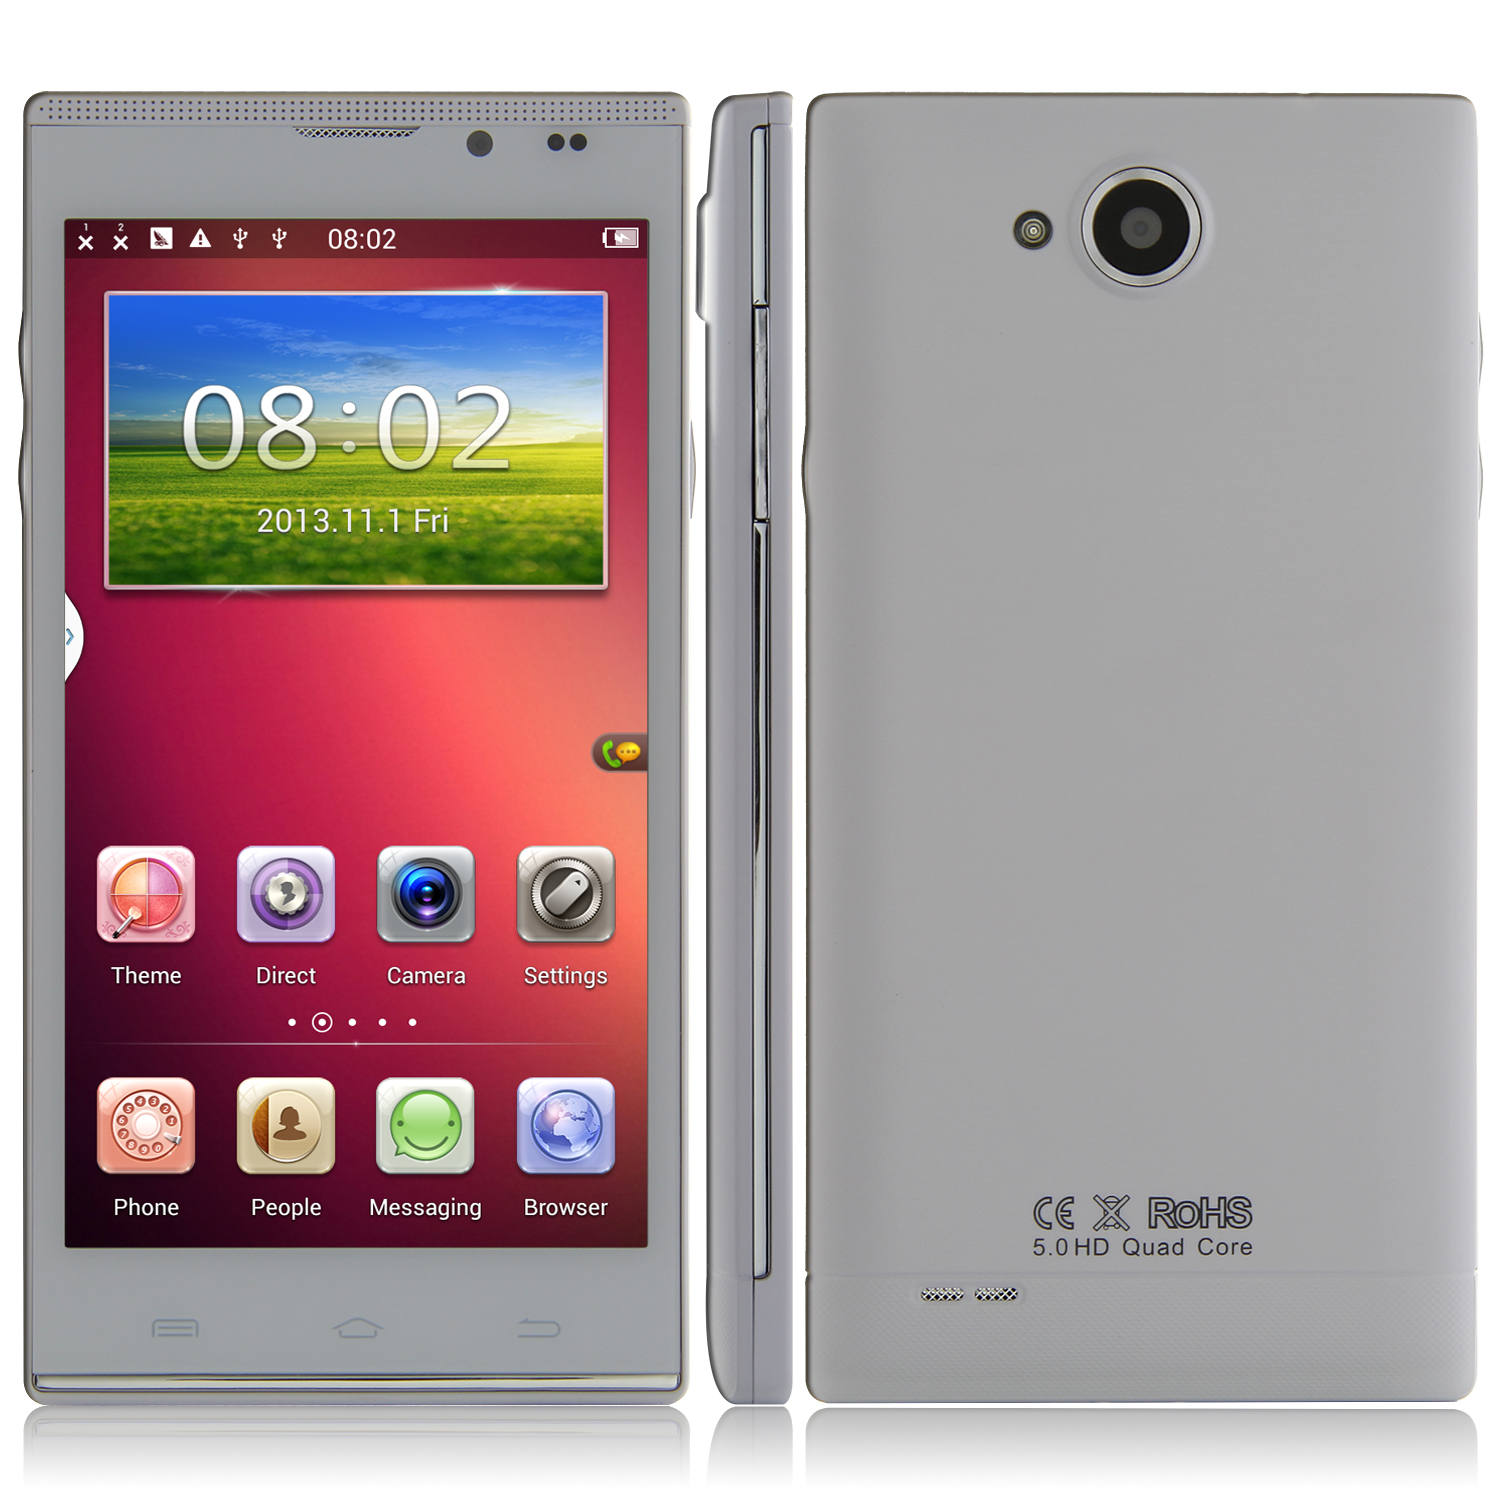 Tengda Q5000 Smartphone MTK6582 Android 4.2 1GB 8GB 5.0 Inch HD Screen 3G GPS White